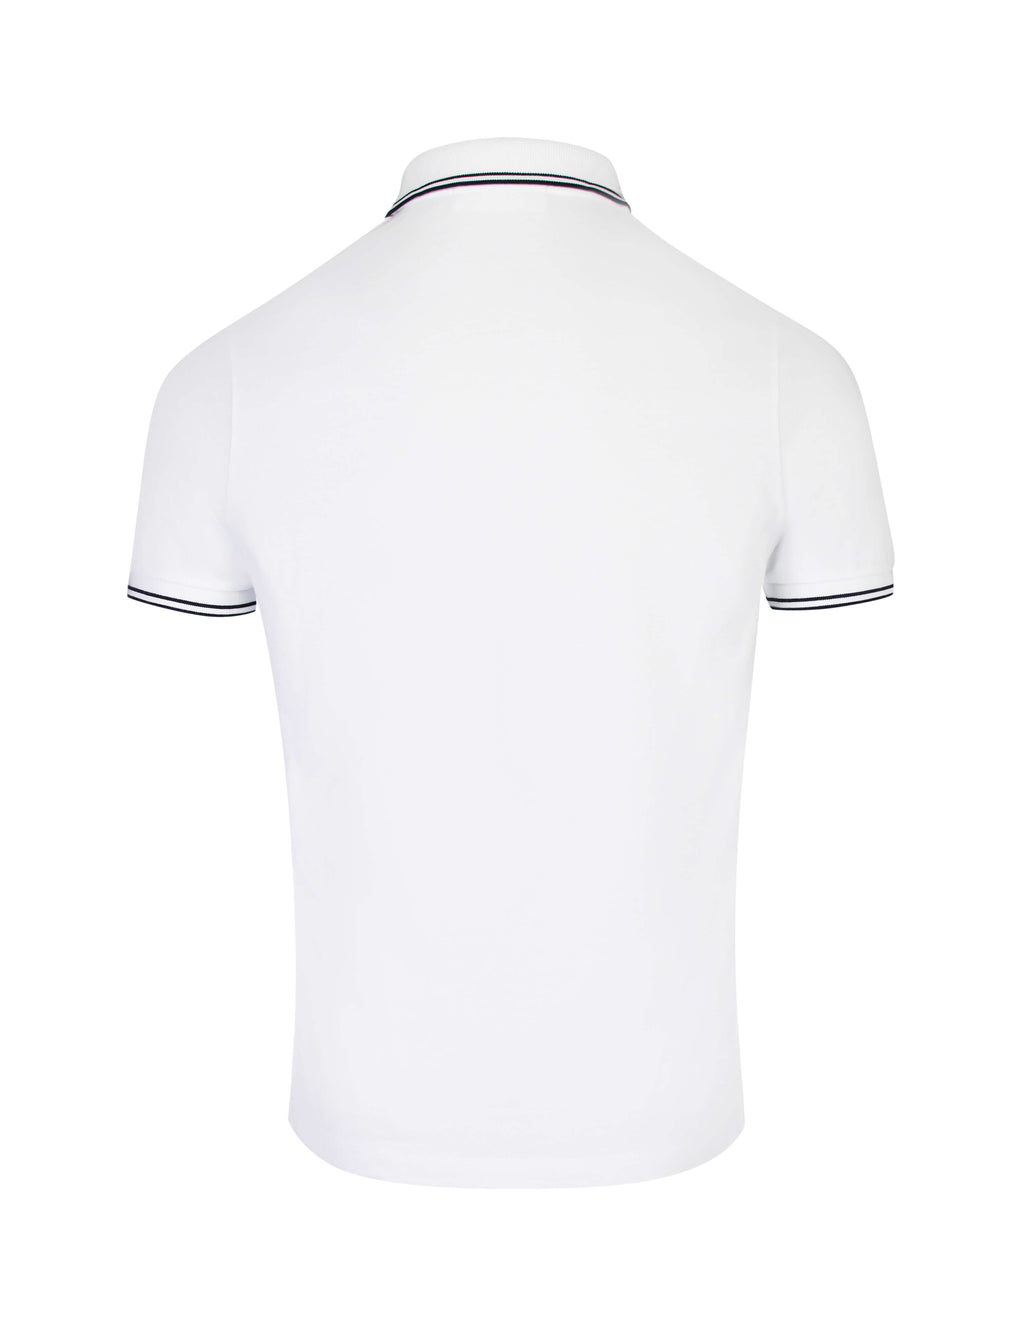 6e36dd23 Stone Island Men's Giulio Fashion White Compass Patch Polo Shirt  101522S18V0001